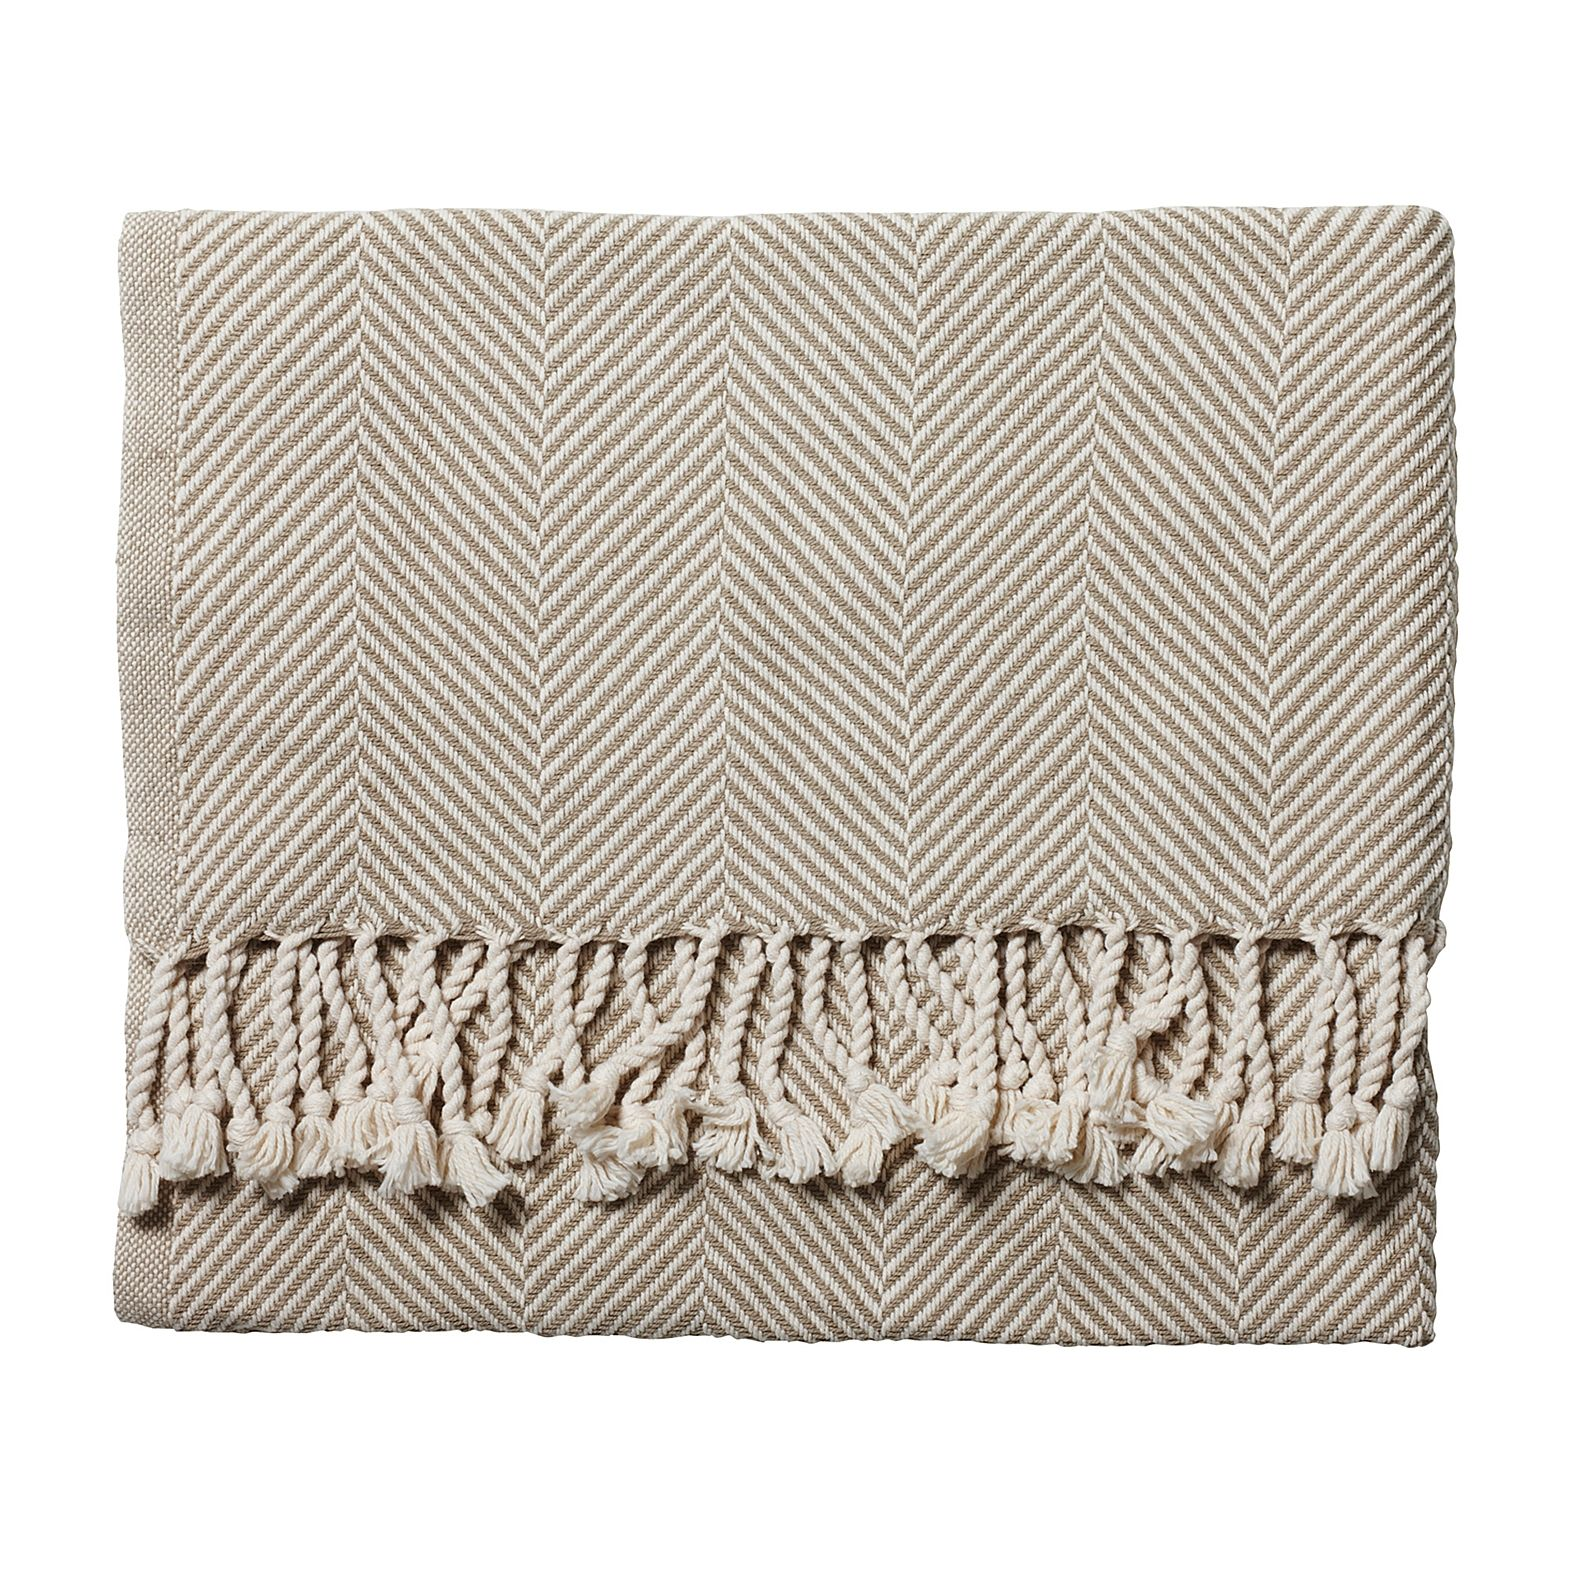 Stone Herringbone Throw $250